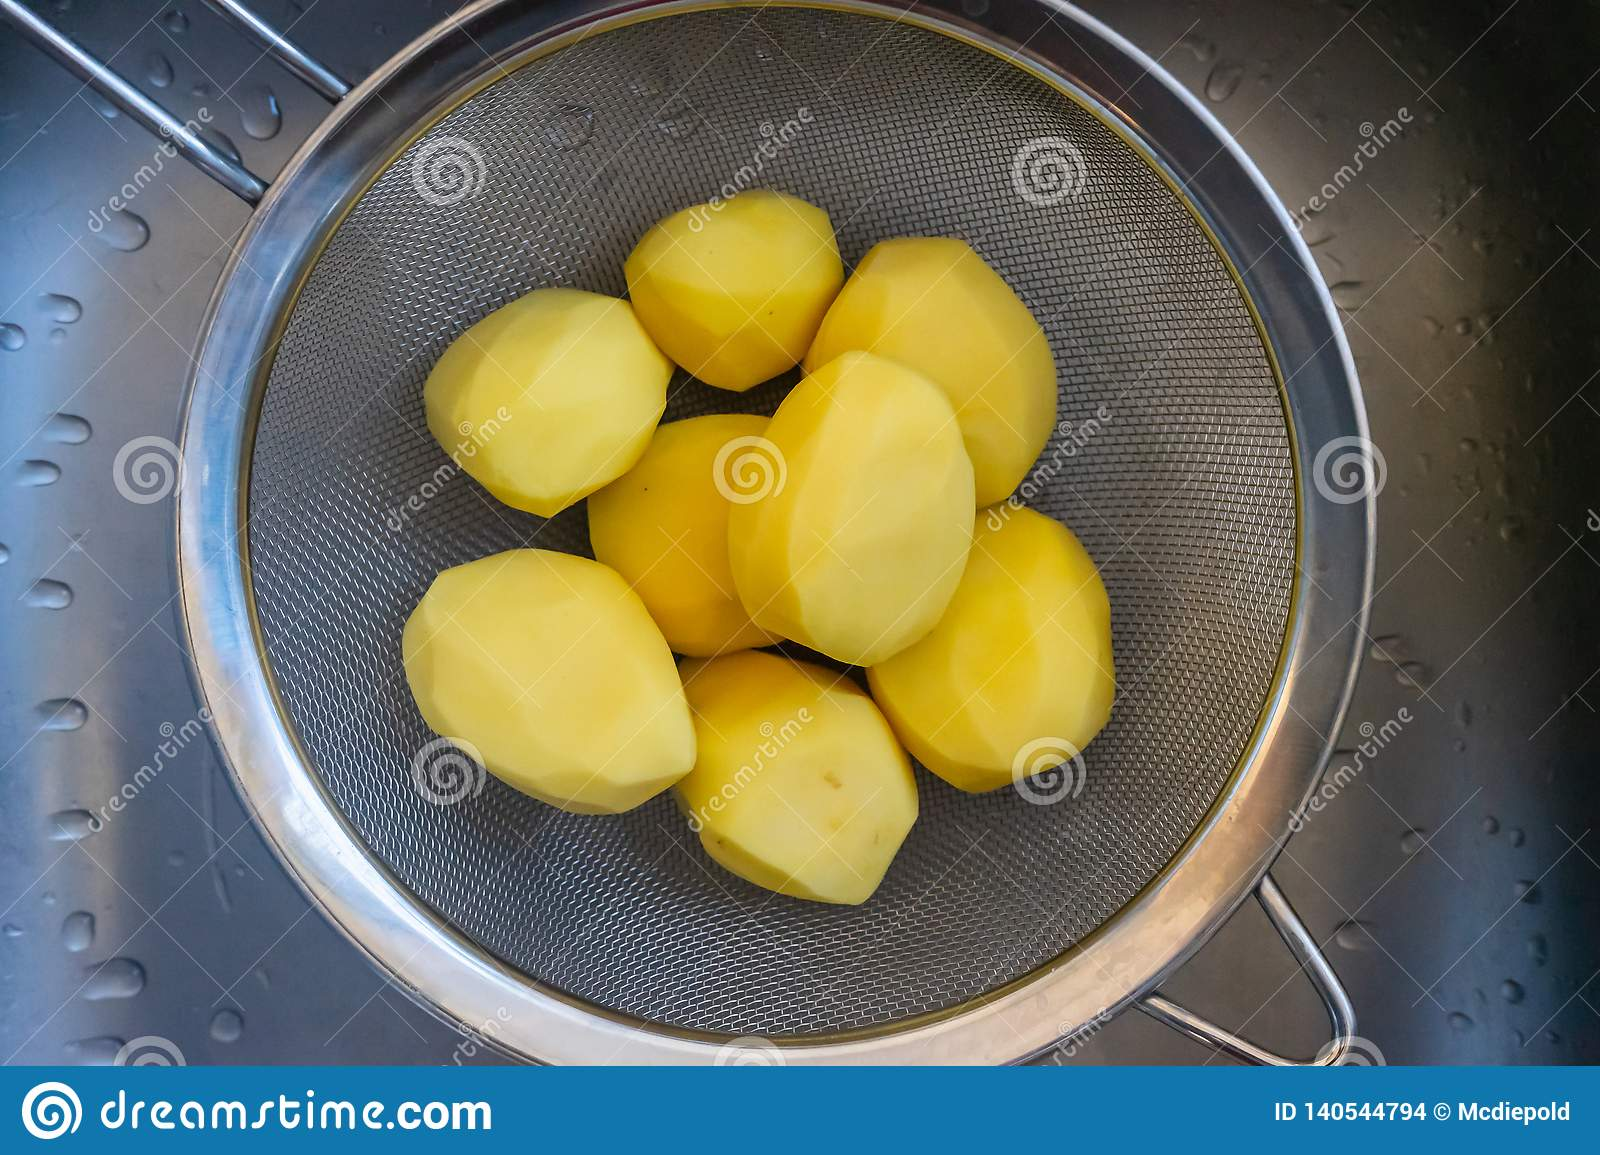 Potatoes peeled in a sieve